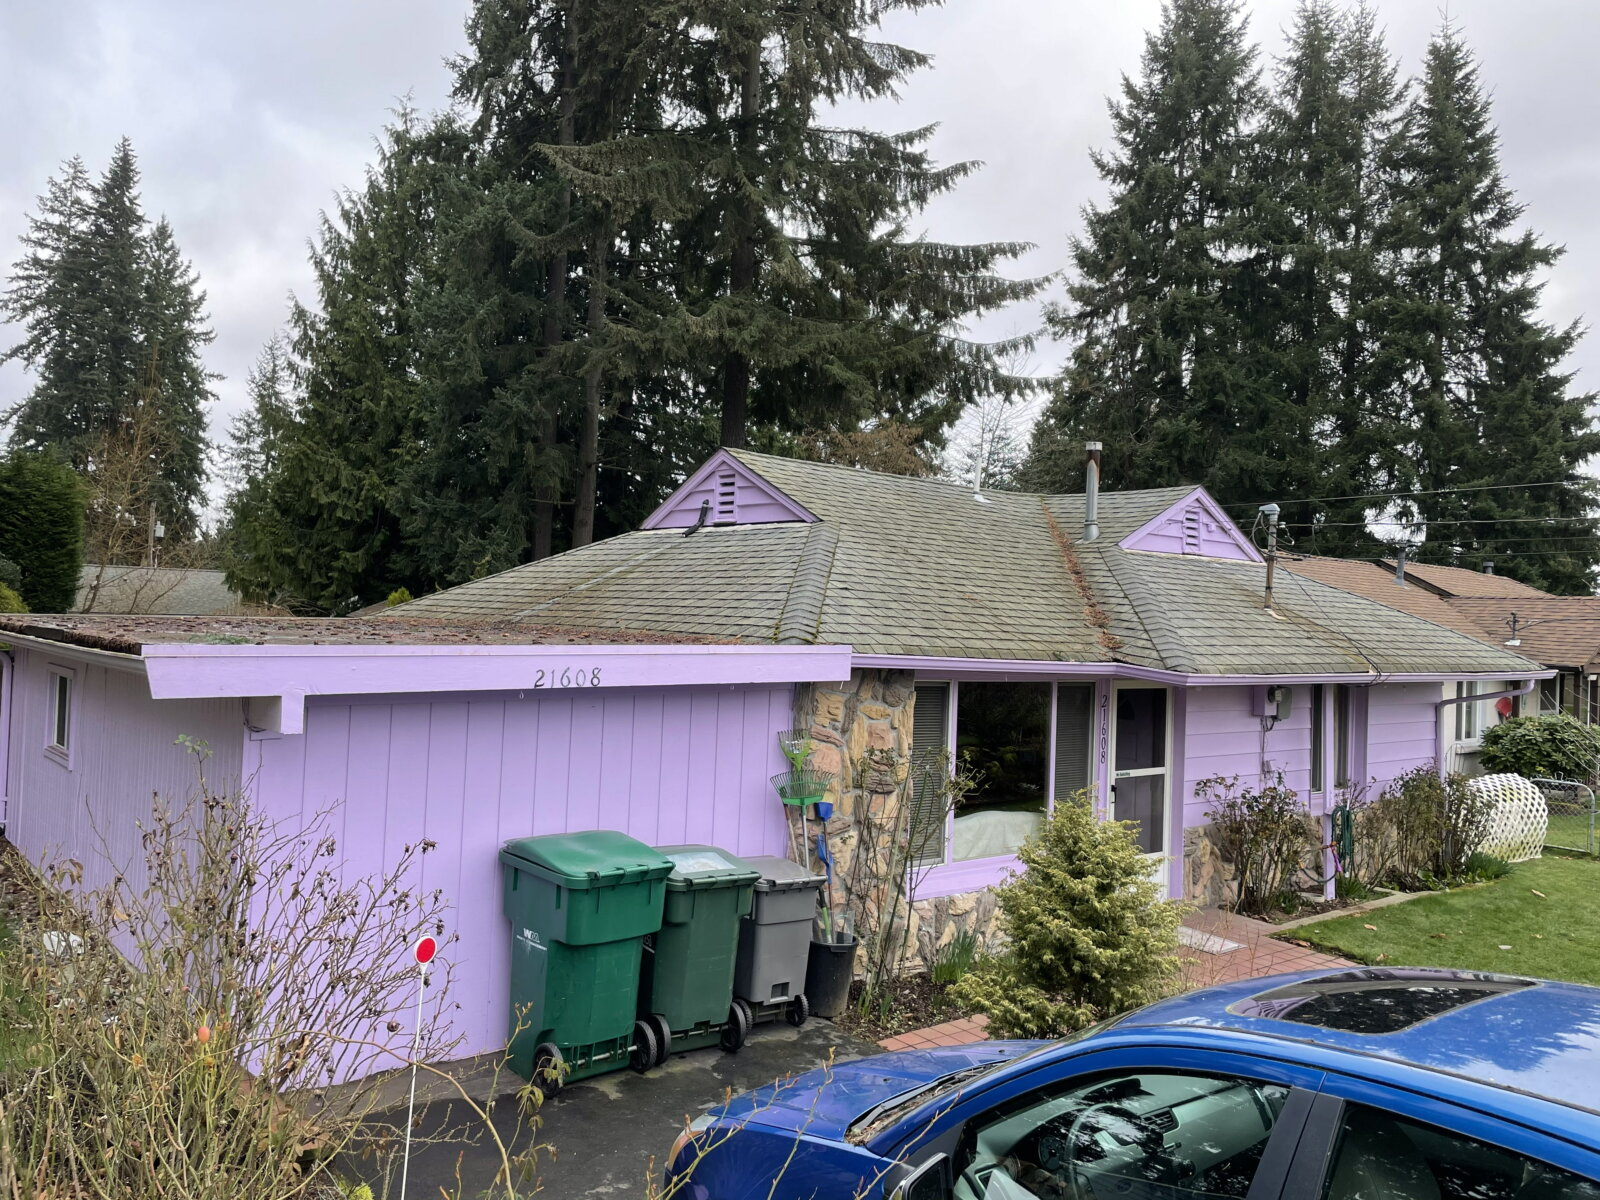 Home for sale north seattle